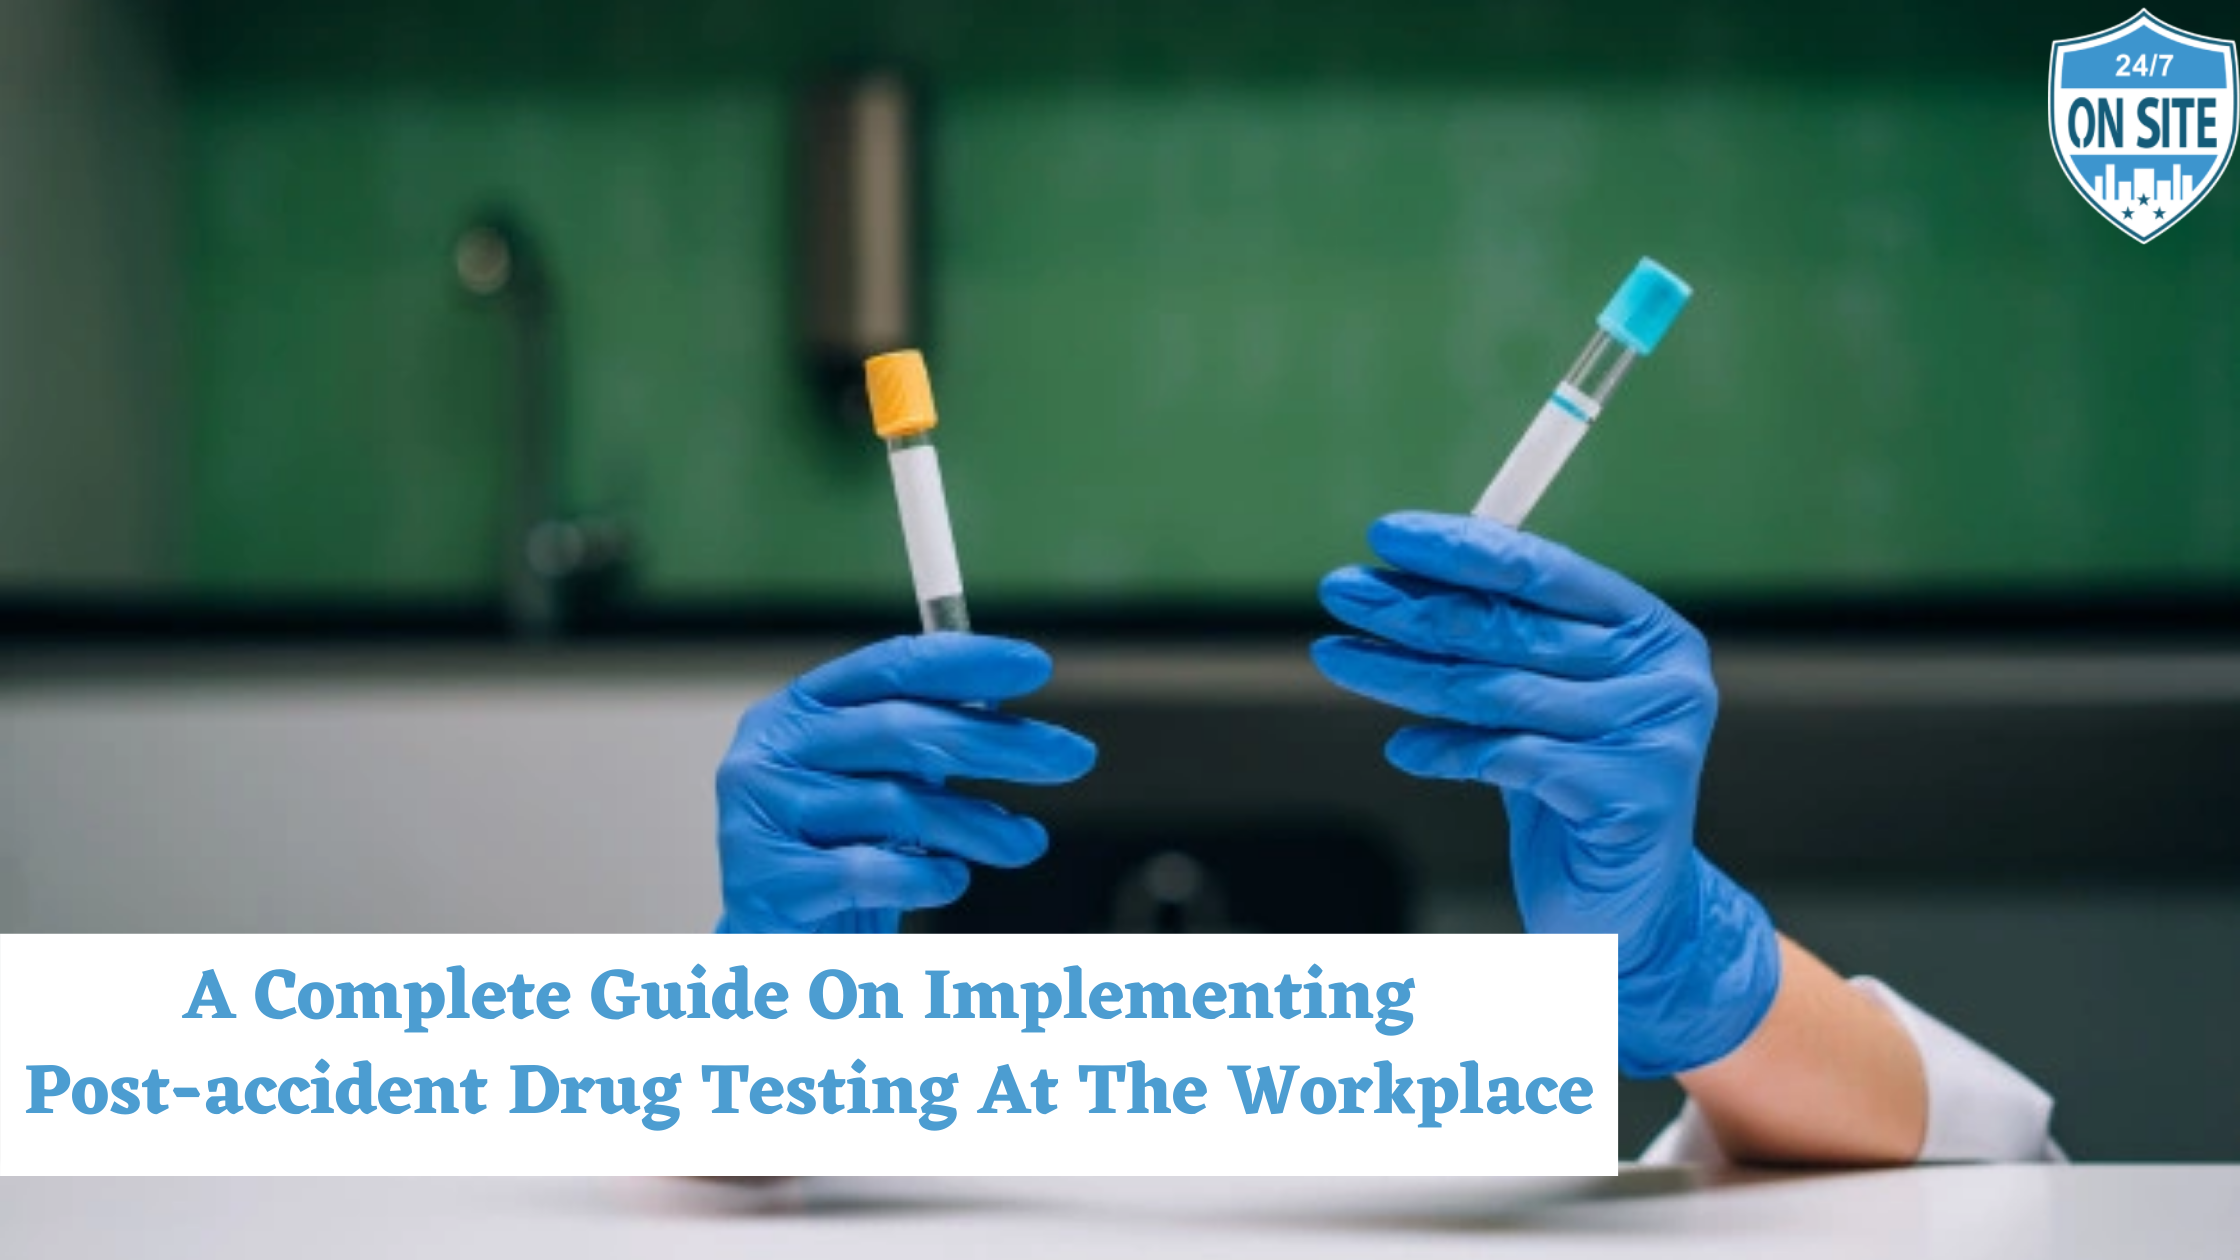 A complete guide on implementing post-accident drug testing at the workplace - 24 hour drug testing Corpus Christi